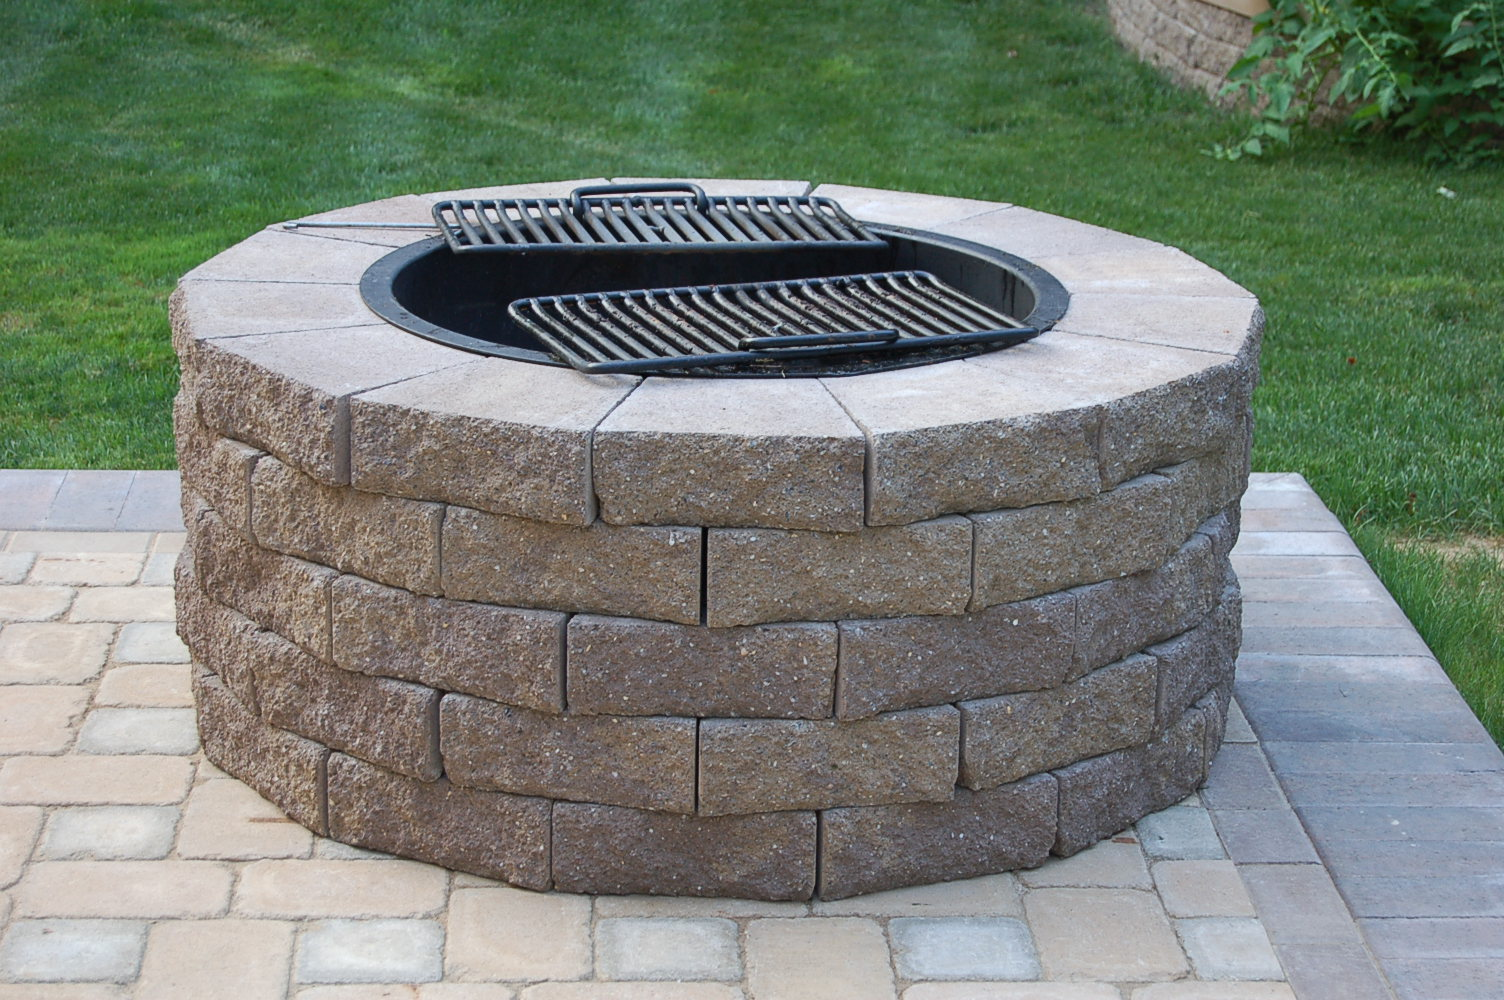 Fire Pit Cooking Grate - Fire Pit Cooking Grate FIREPLACE DESIGN IDEAS